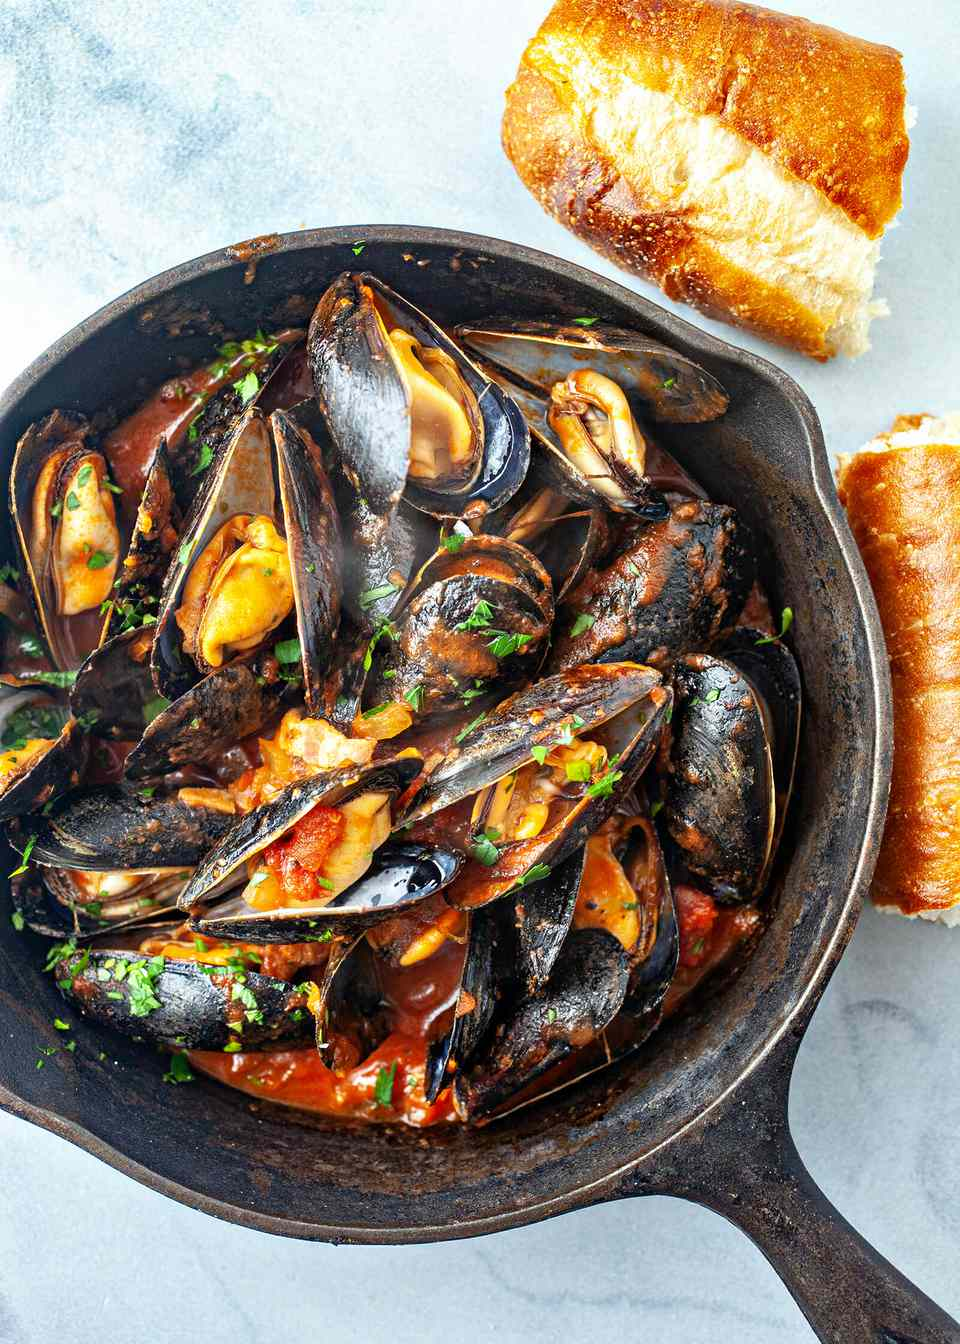 Steamed Mussels in Tomato Sauce - mussels in cast iron pan with baguette